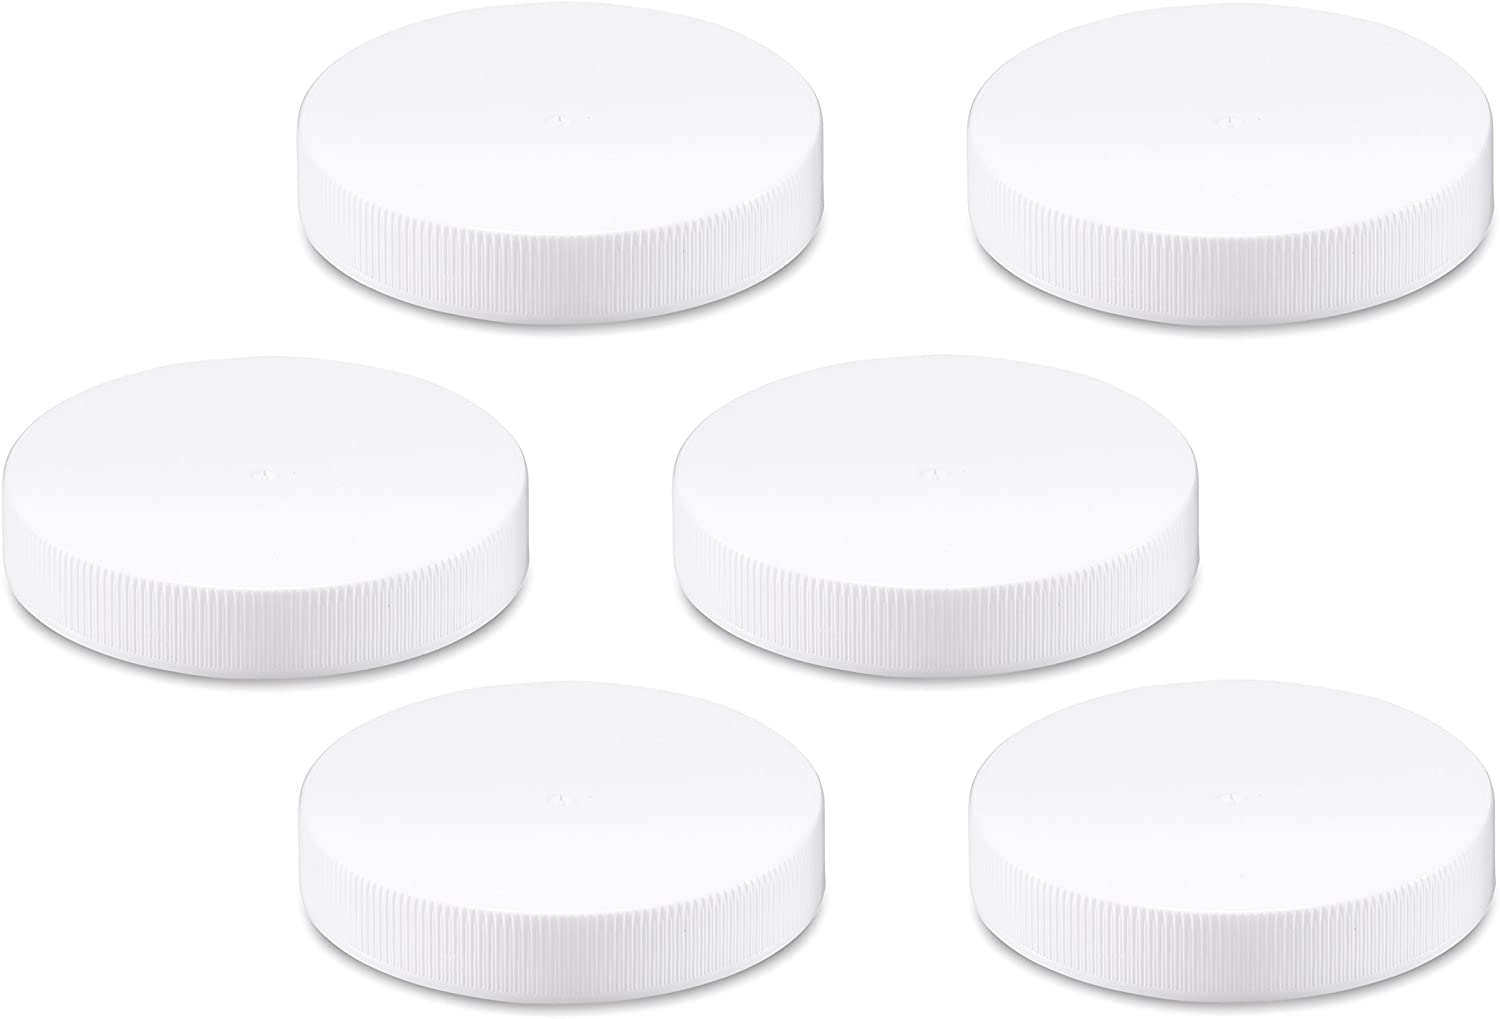 All About Juicing Replacement Lids for 16 Ounce Wide Mouth VAS Exclusive Beverage Bottles, 6 Pack caps